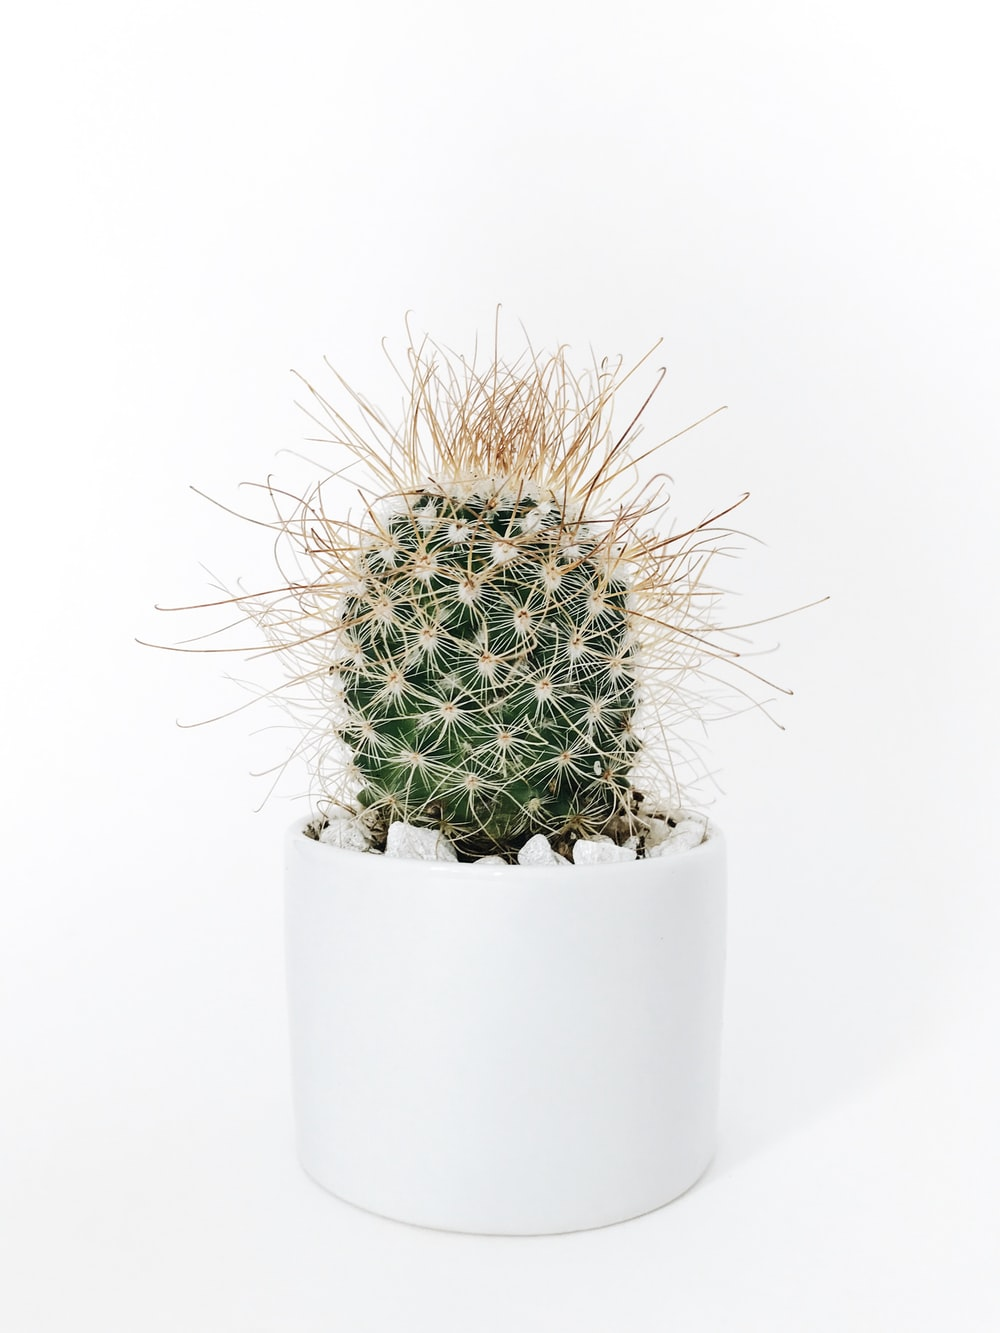 green cactus plant in vase